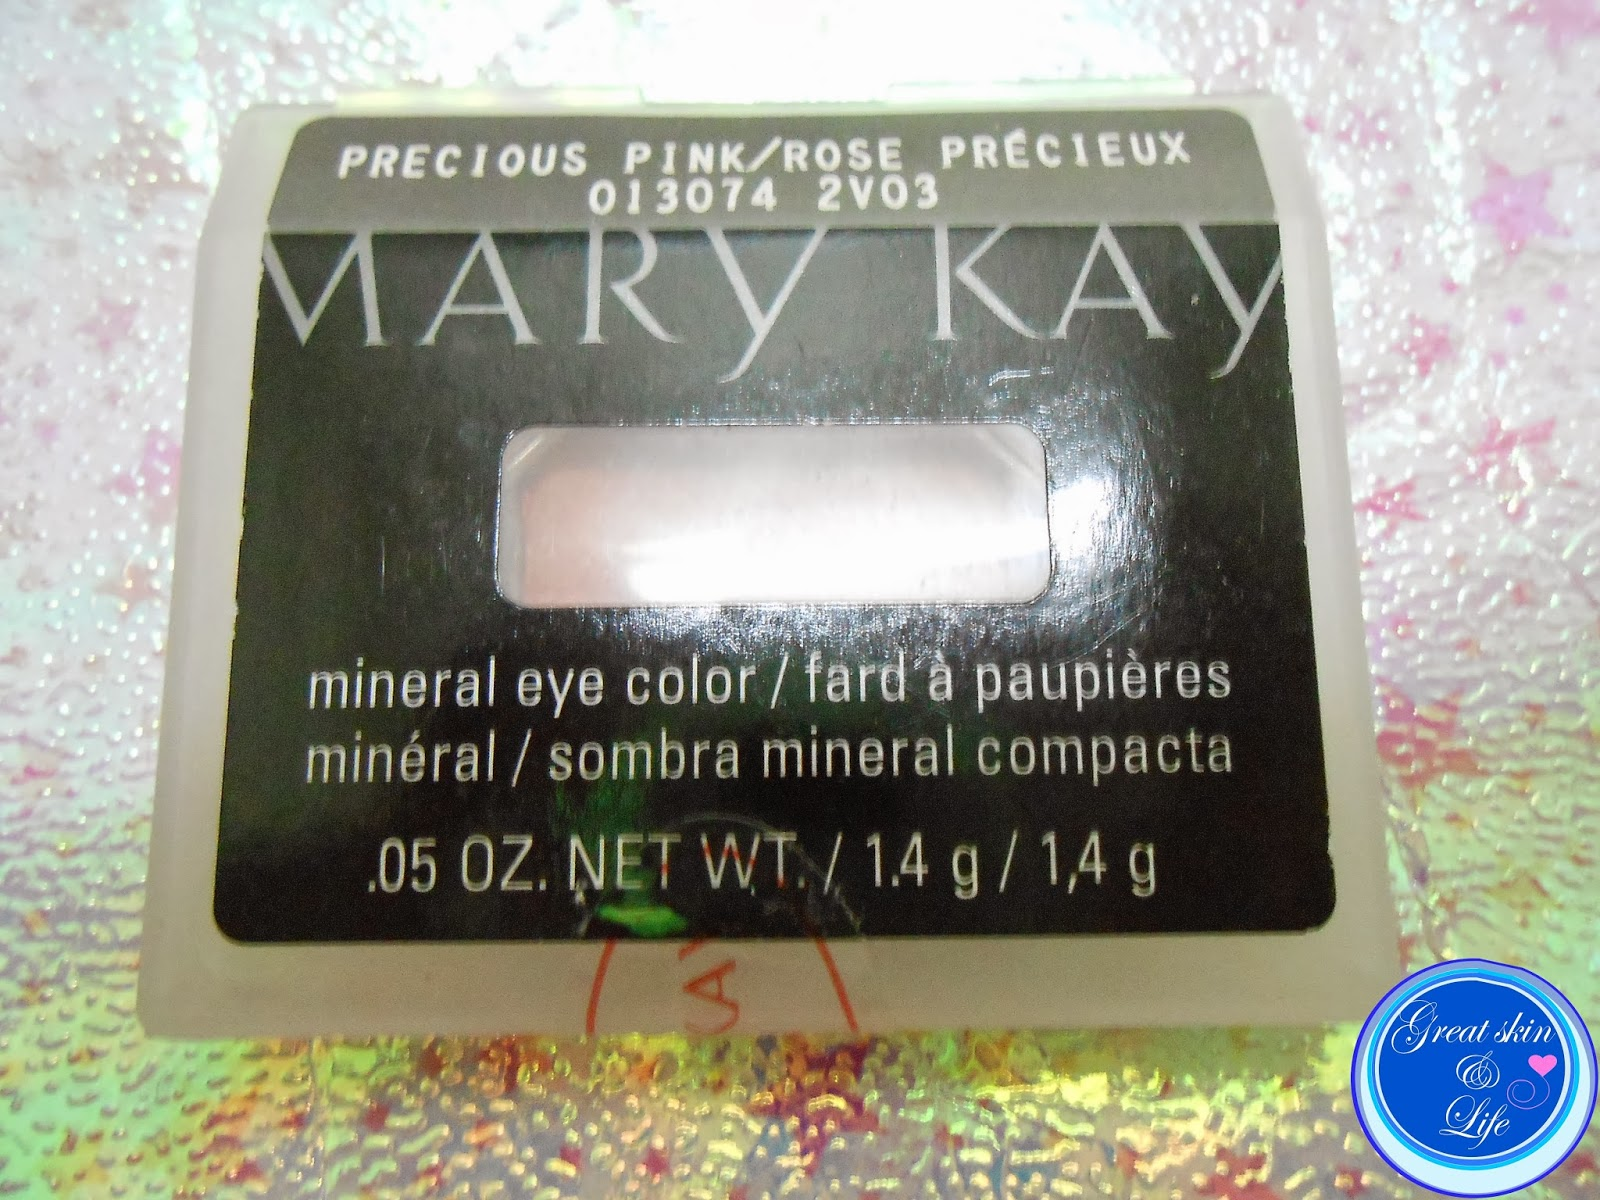 MARY KAY PRECIOUS PINK/ROSE